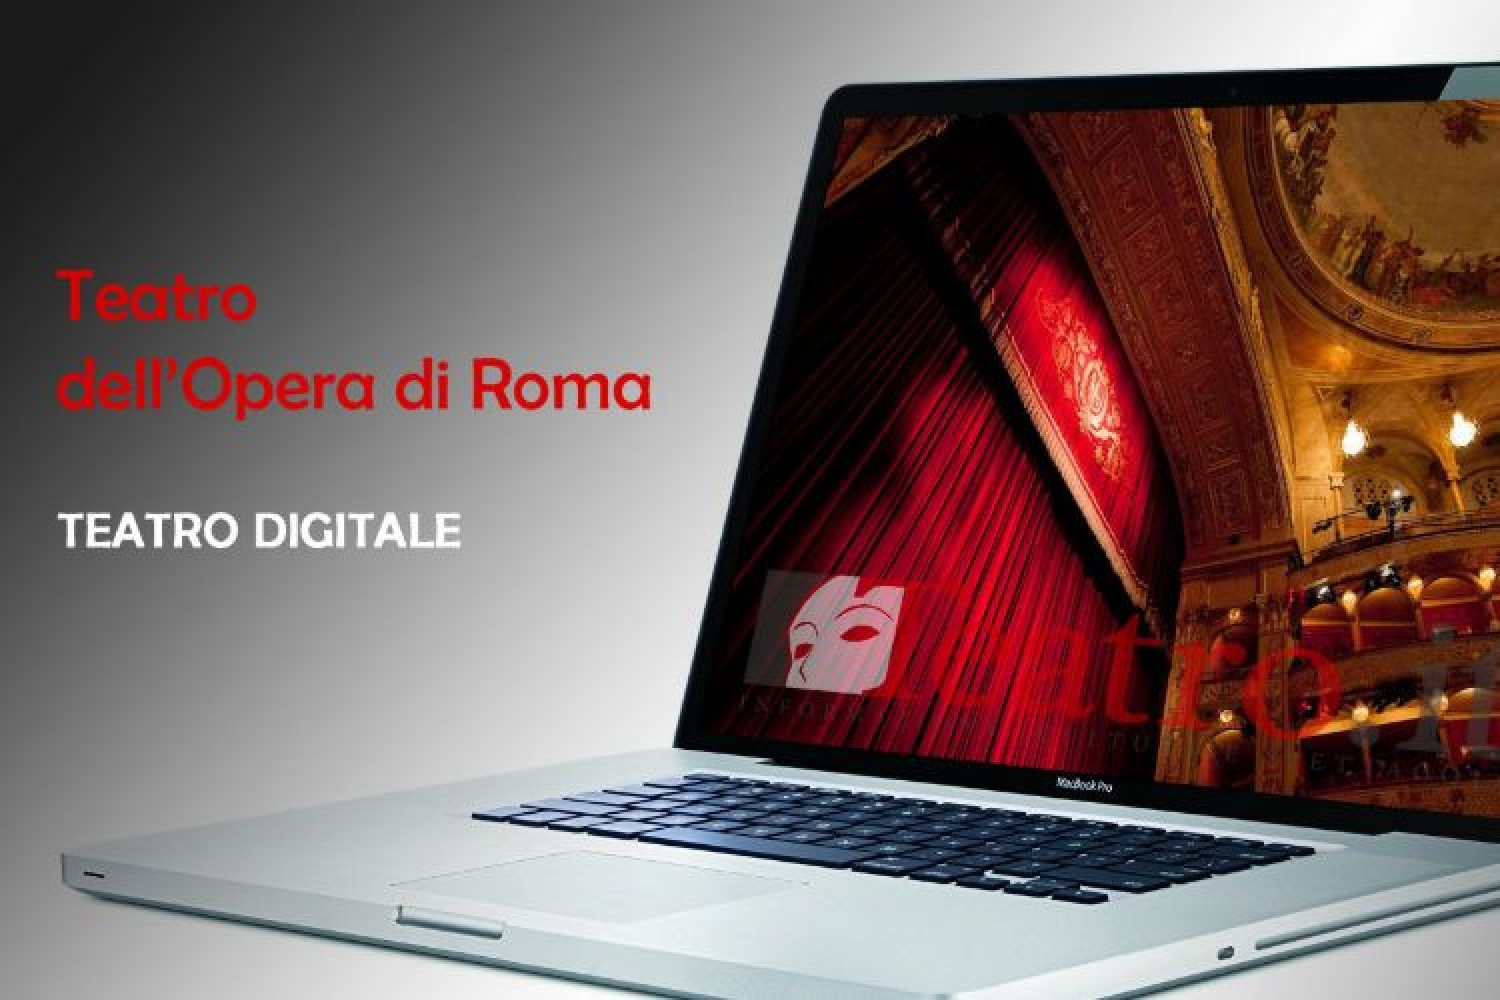 #IoRestoacasa: in streaming le opere gratuite del Teatro dell'Opera di Roma